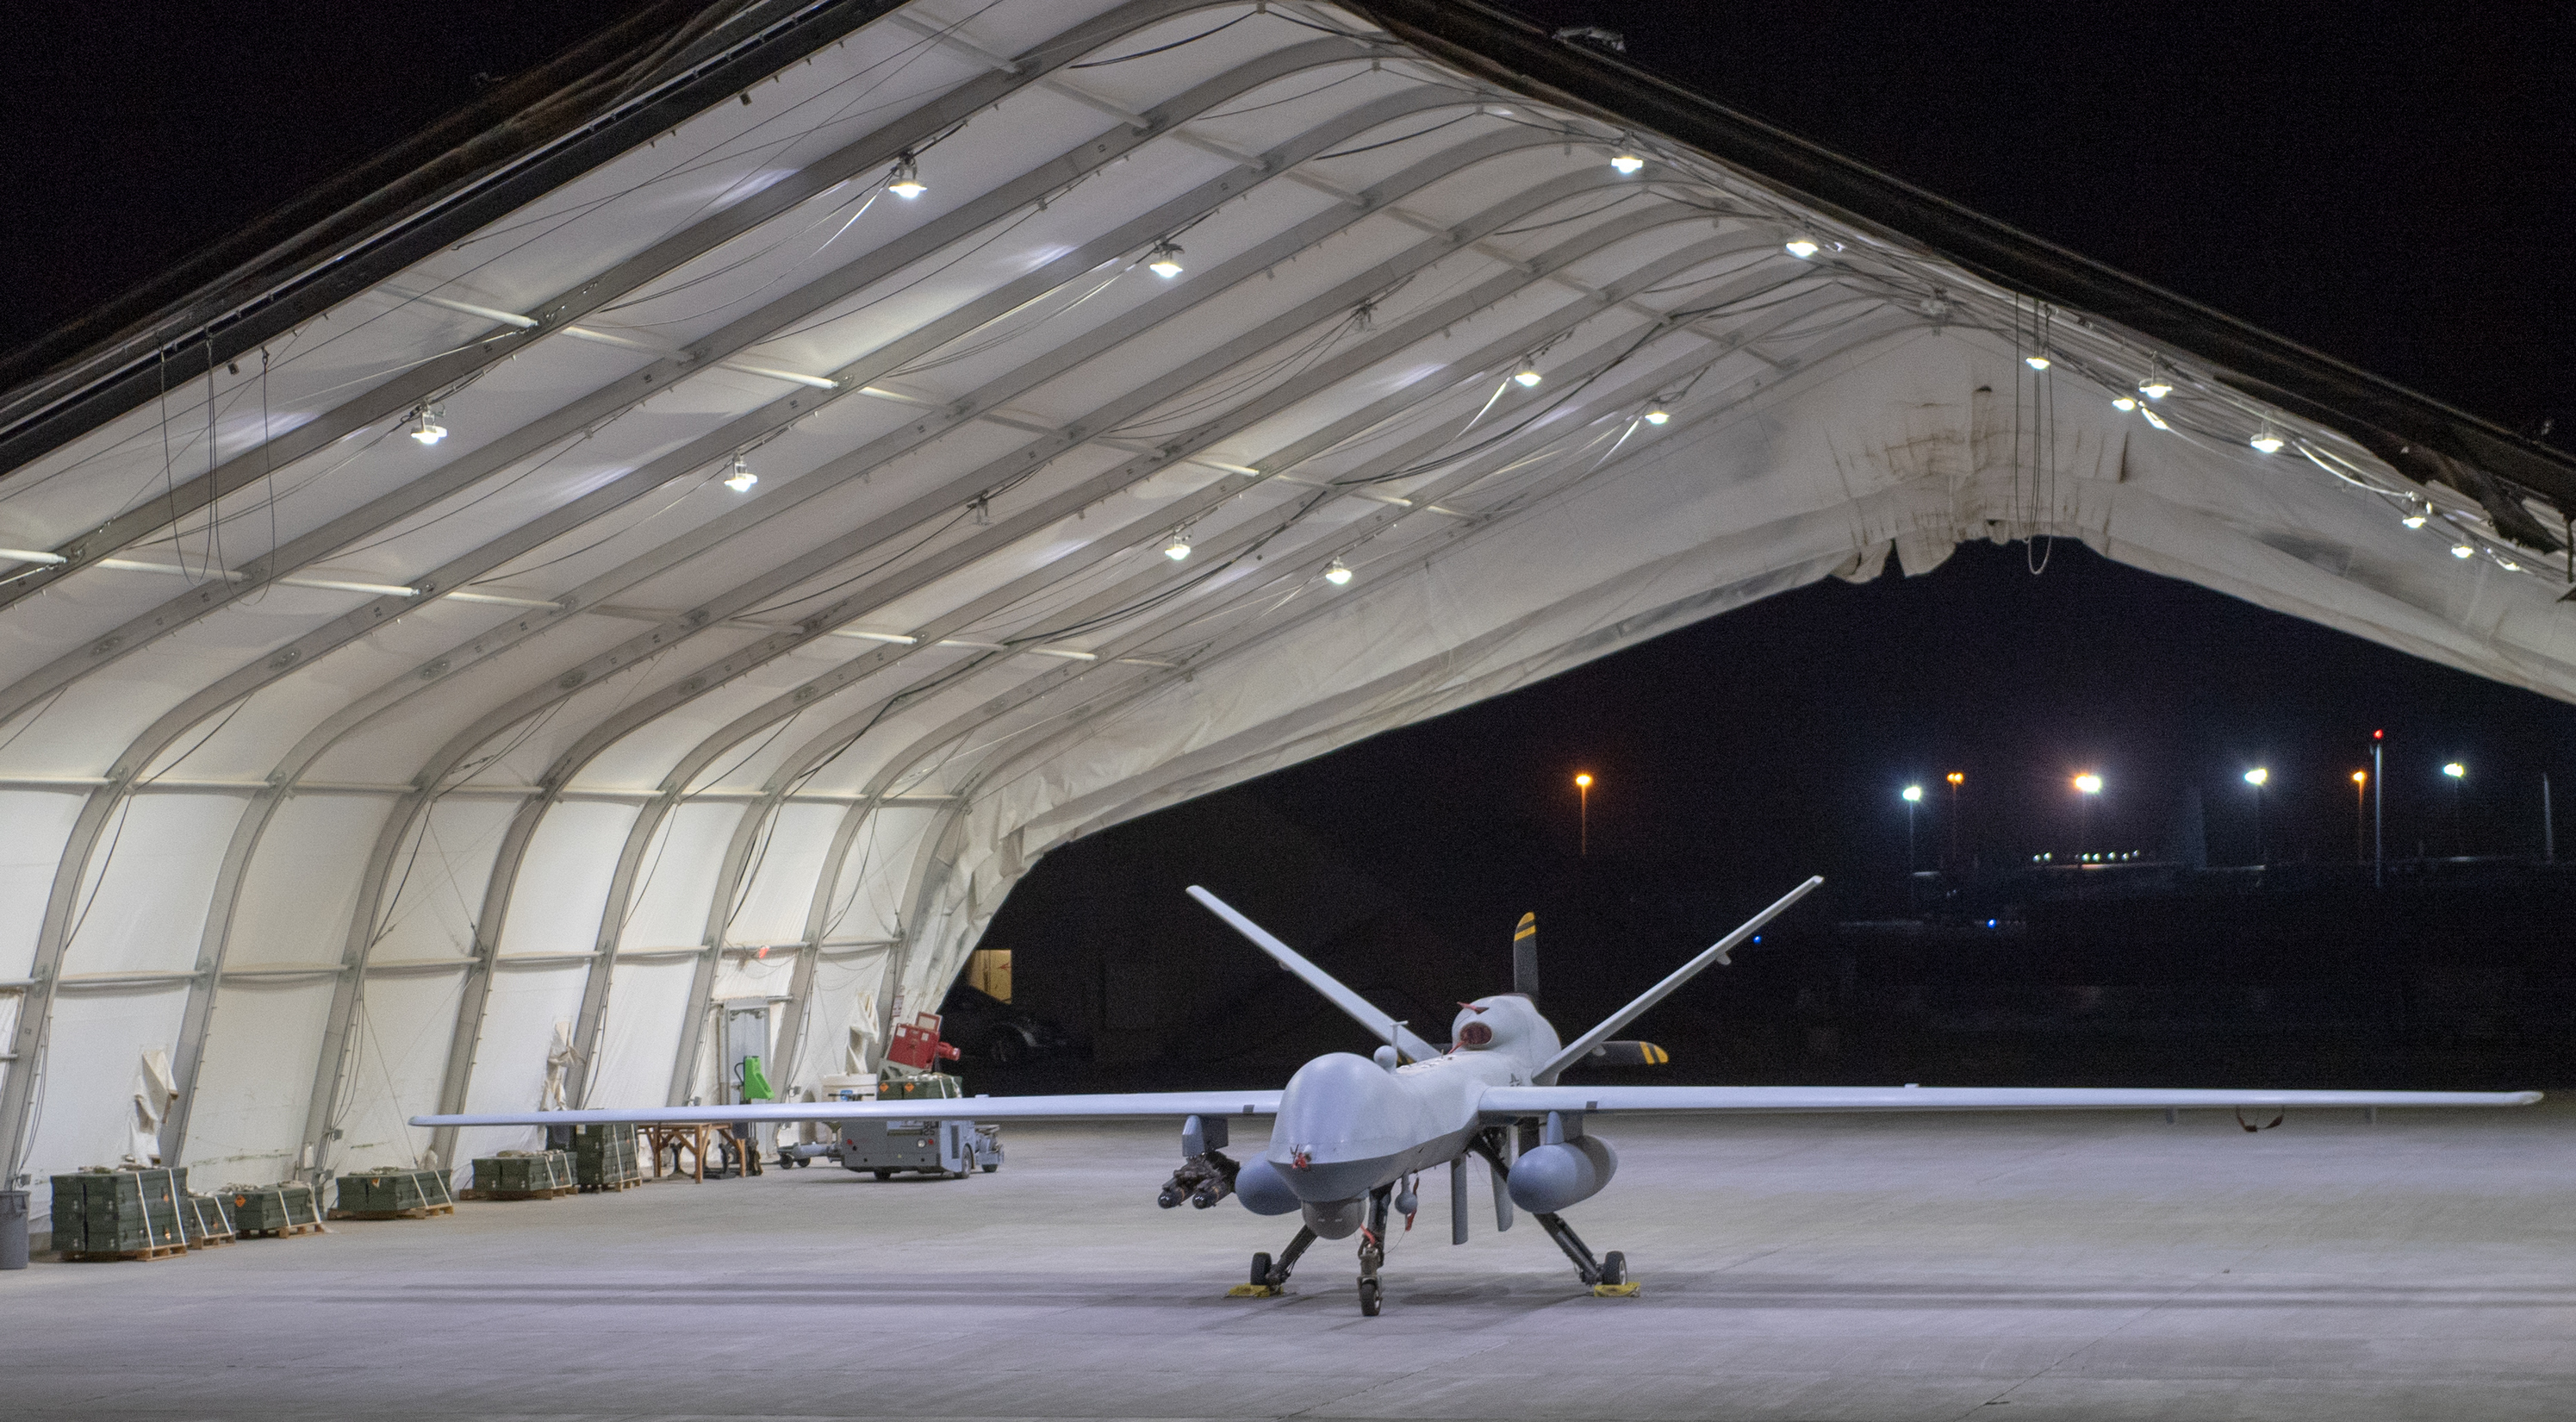 Ударный дрон MQ-9 Reaper (фото — US Air Force, Michael Mason)